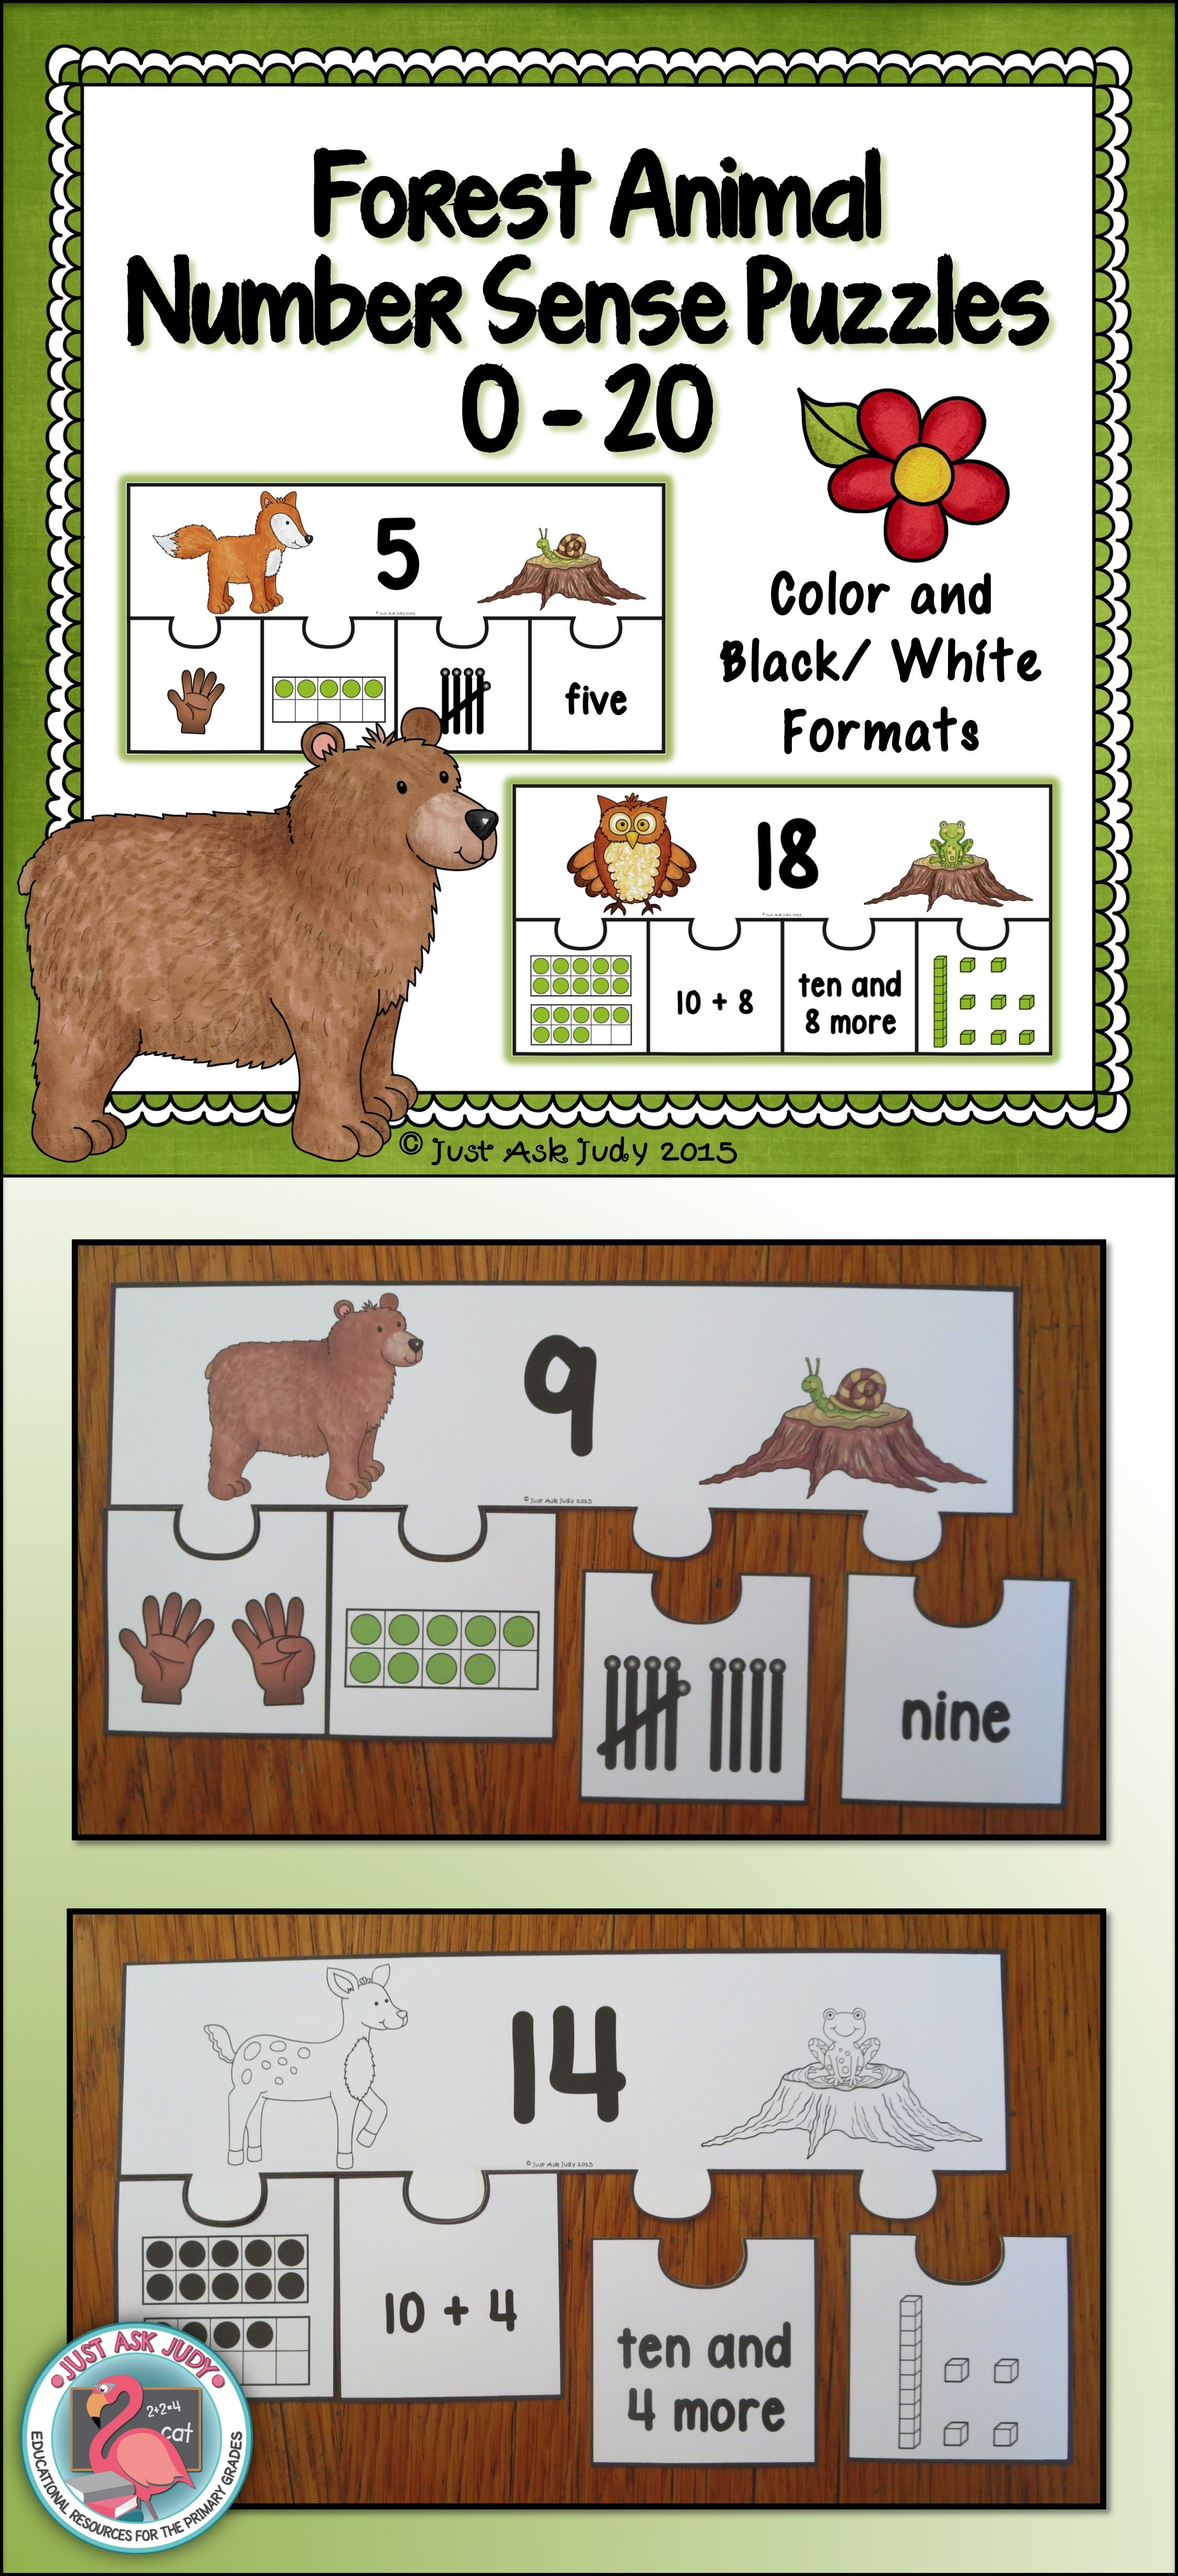 Number Sense 0 20 Forest Animal Puzzles